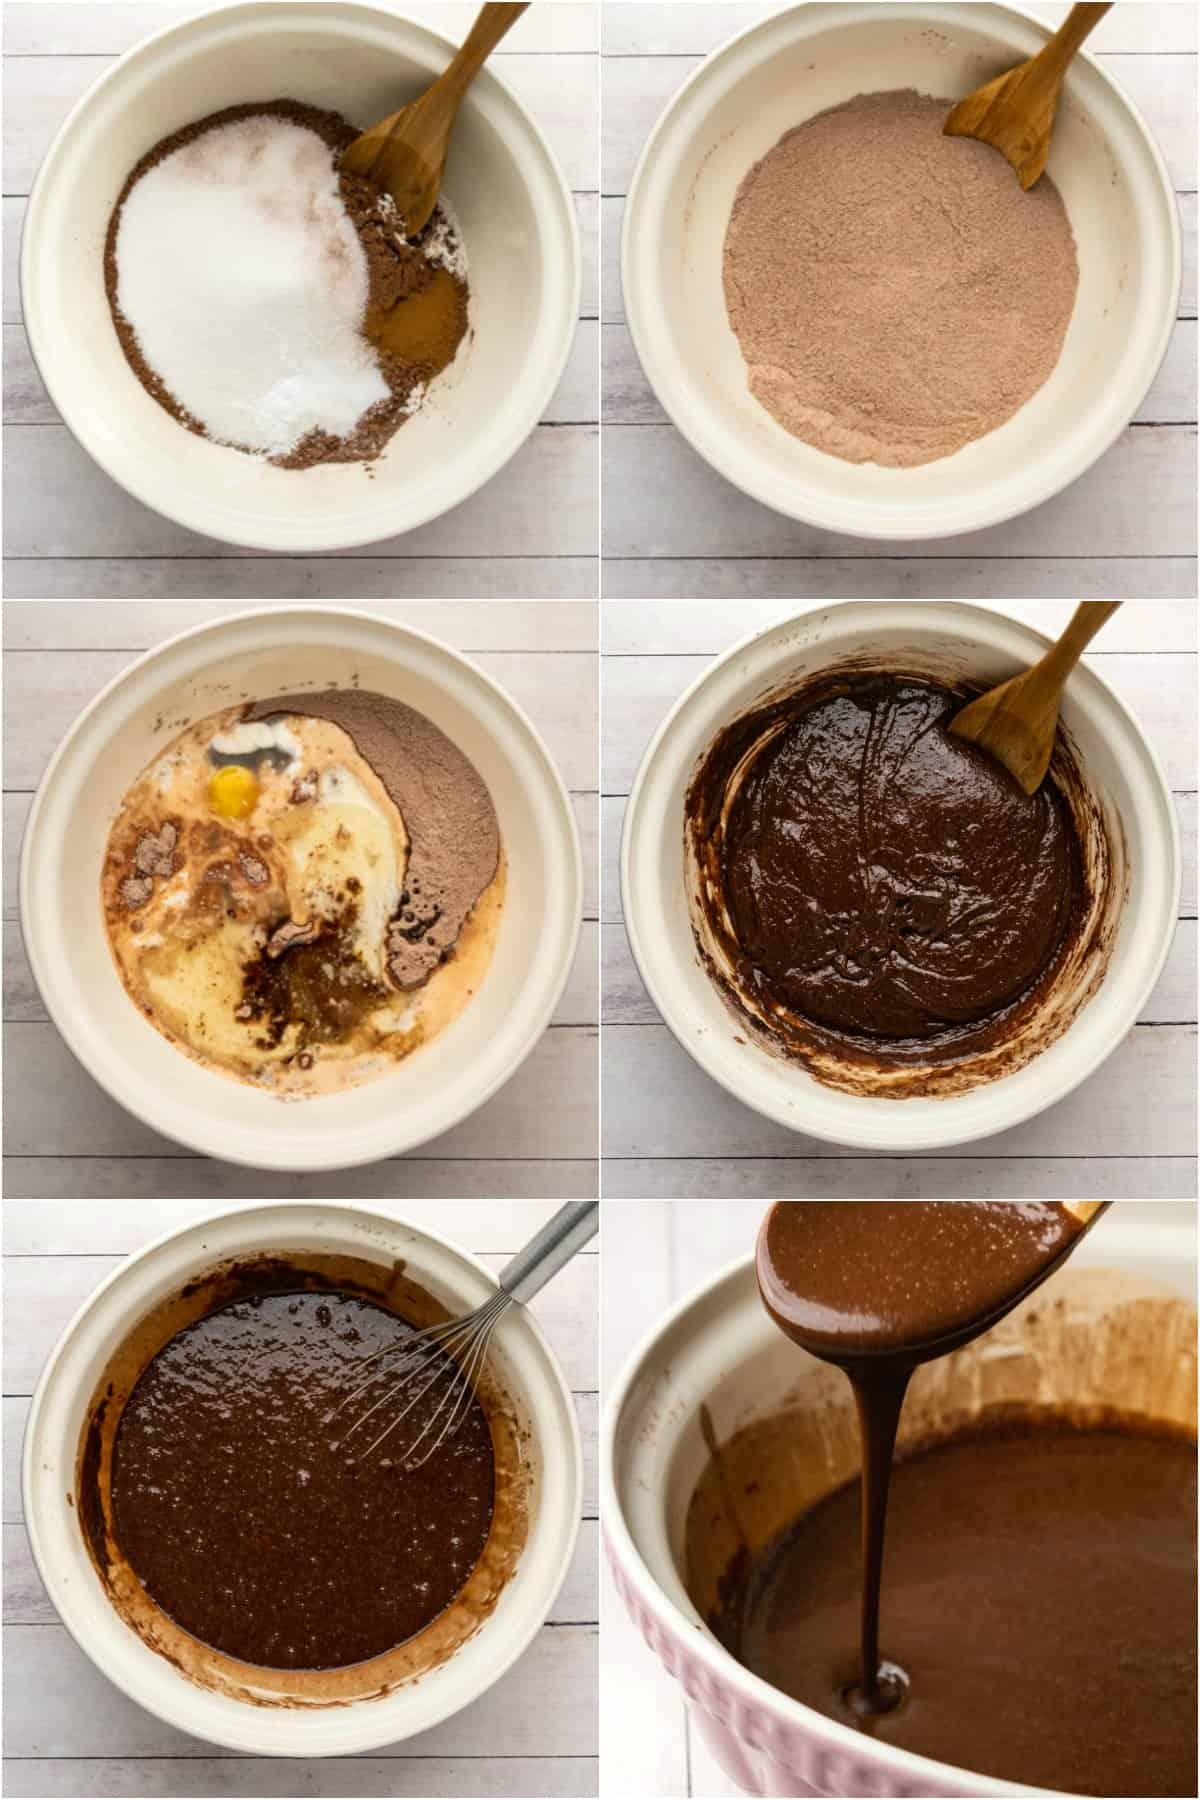 Step by step process photo collage of making the batter for a chocolate cake.